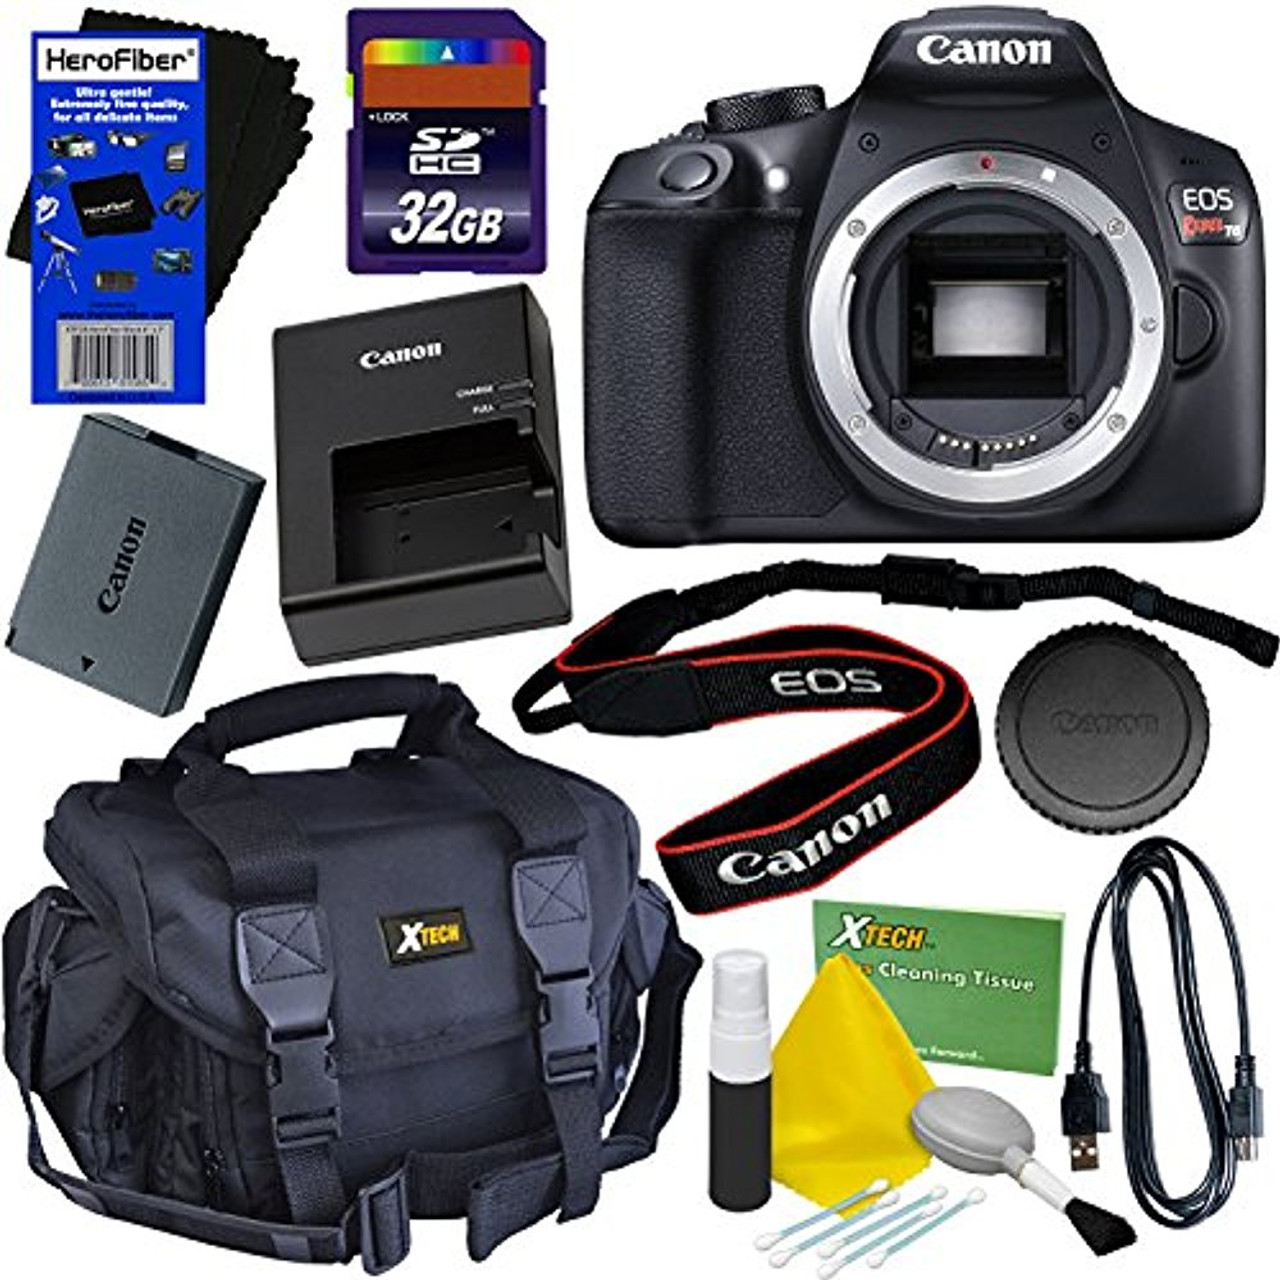 Canon Eos Rebel T6 Digital Slr Camera Body Only 32gb Accessory Kit W Herofiber Ultra Gentle Cleaning Cloth